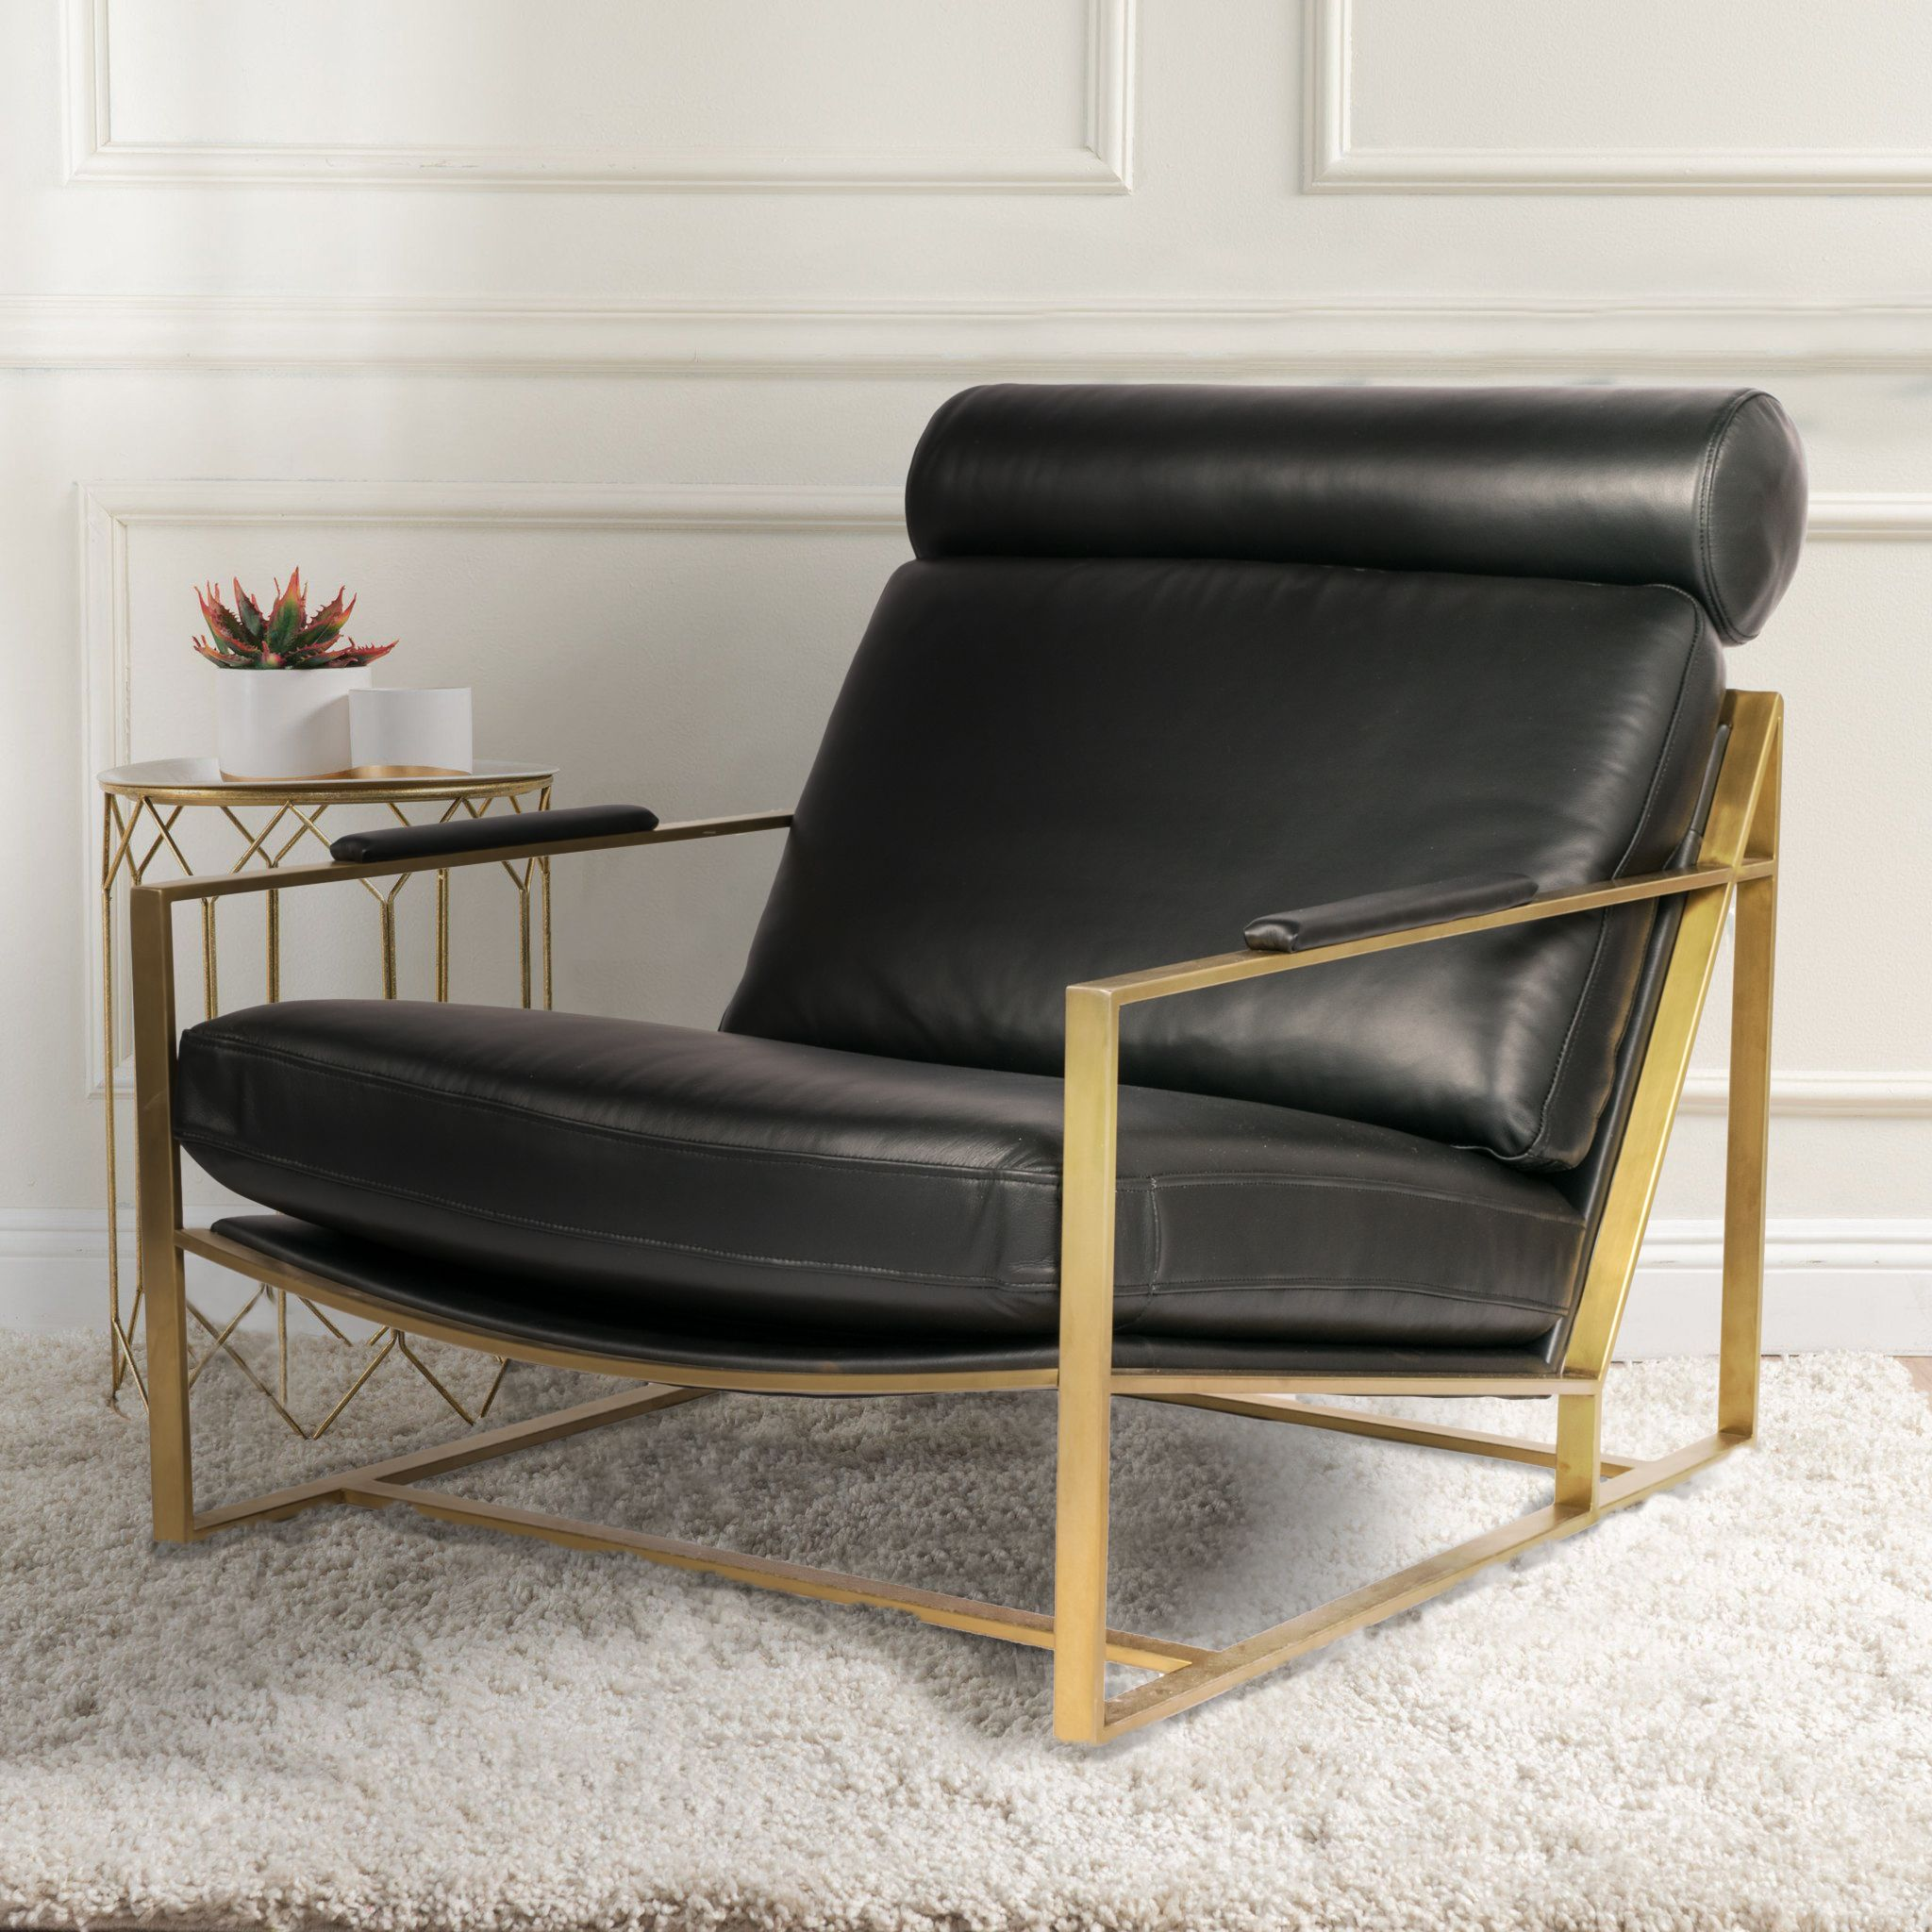 Kavuus Americana Chair In Italian Black Leather And Polished